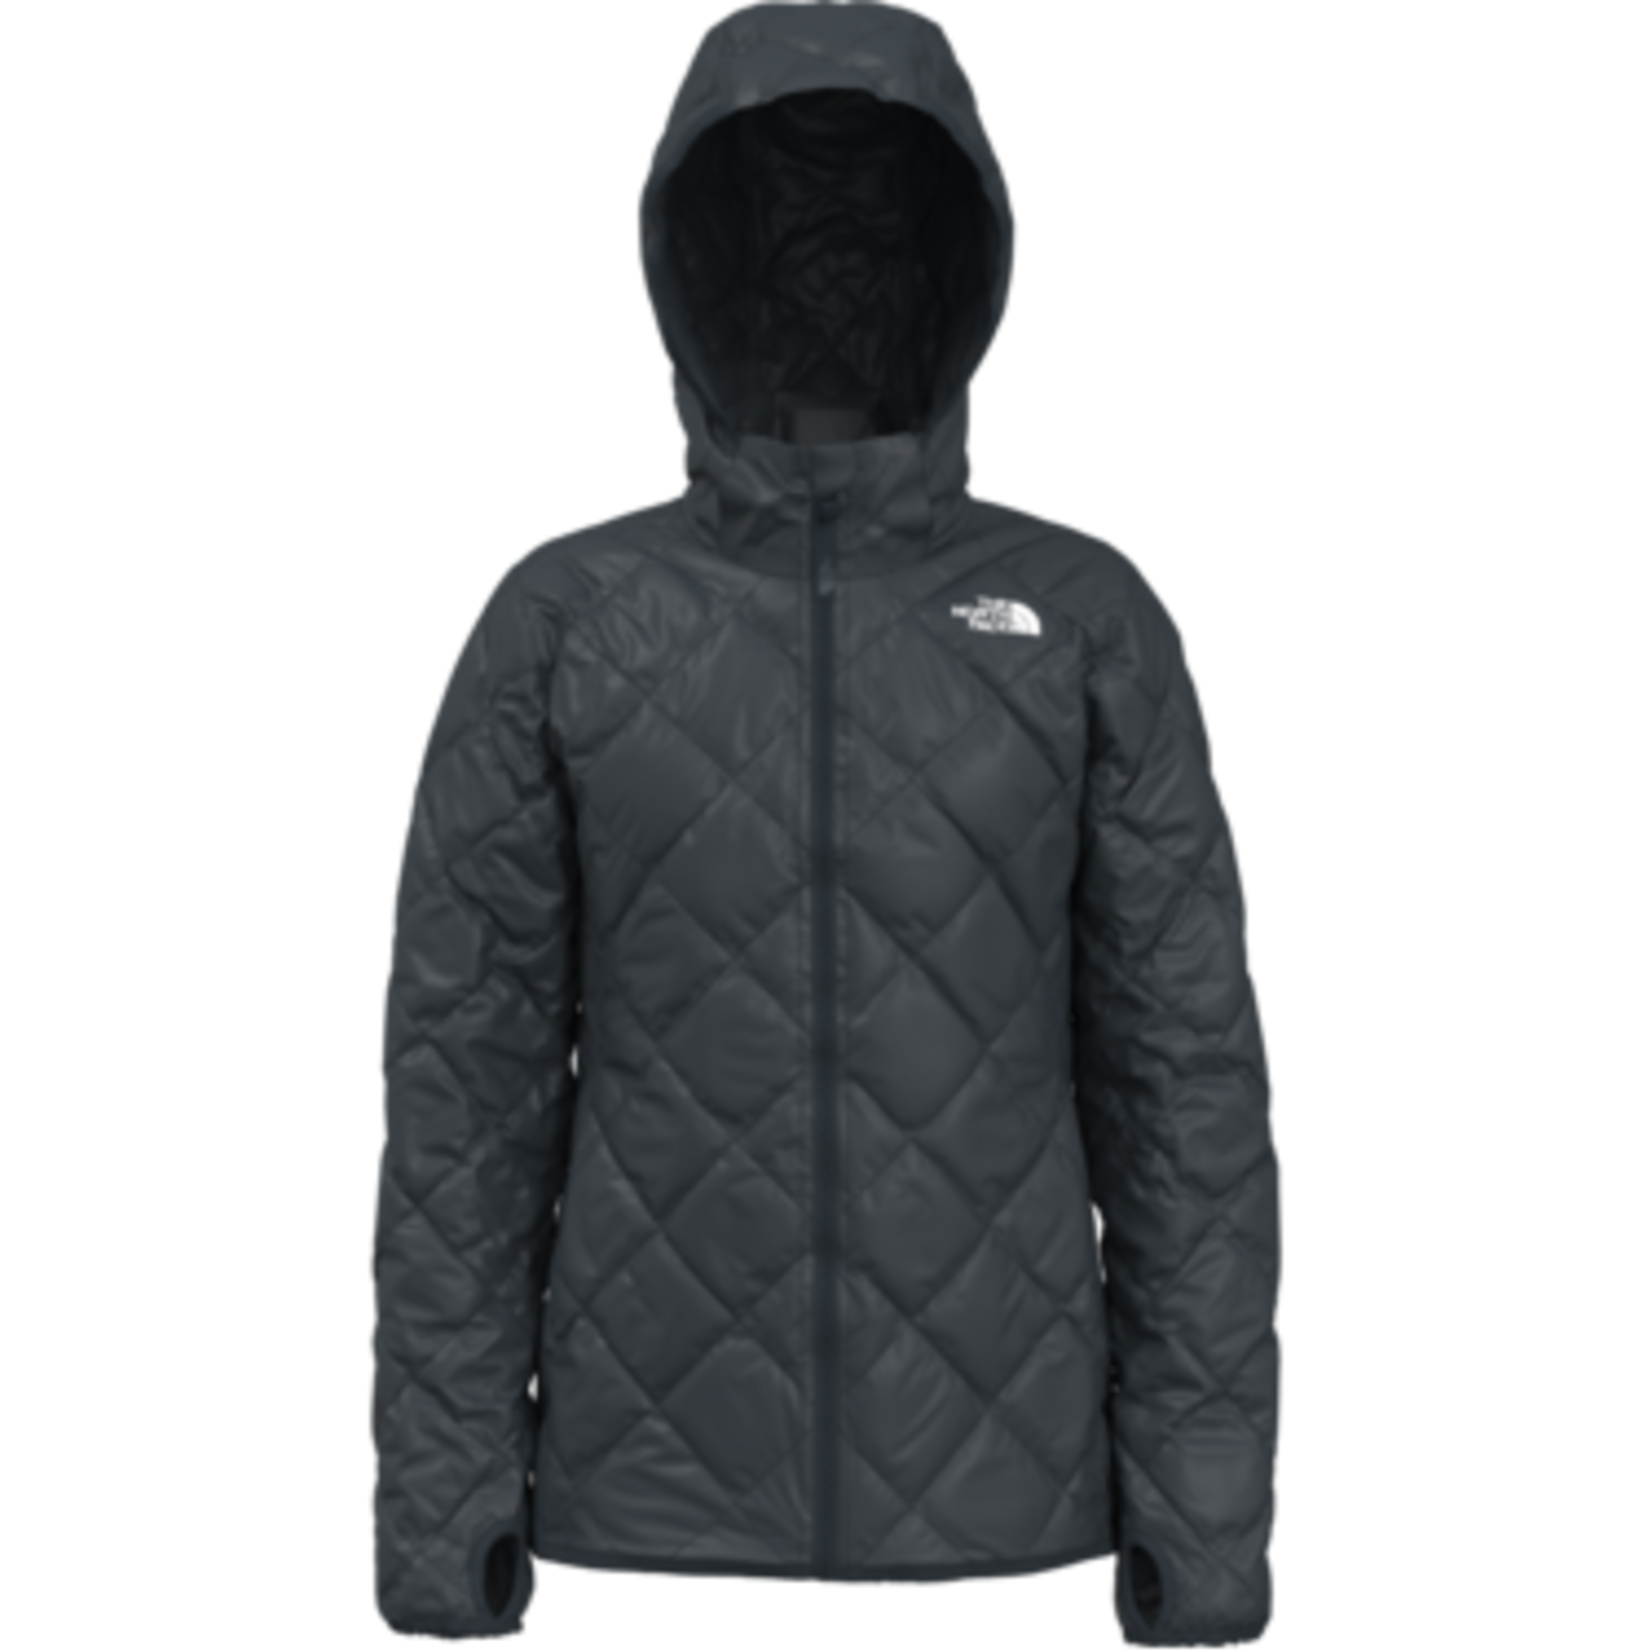 The North Face The North Face Winter Jacket, Thermoball Eco Hoodie, Girls